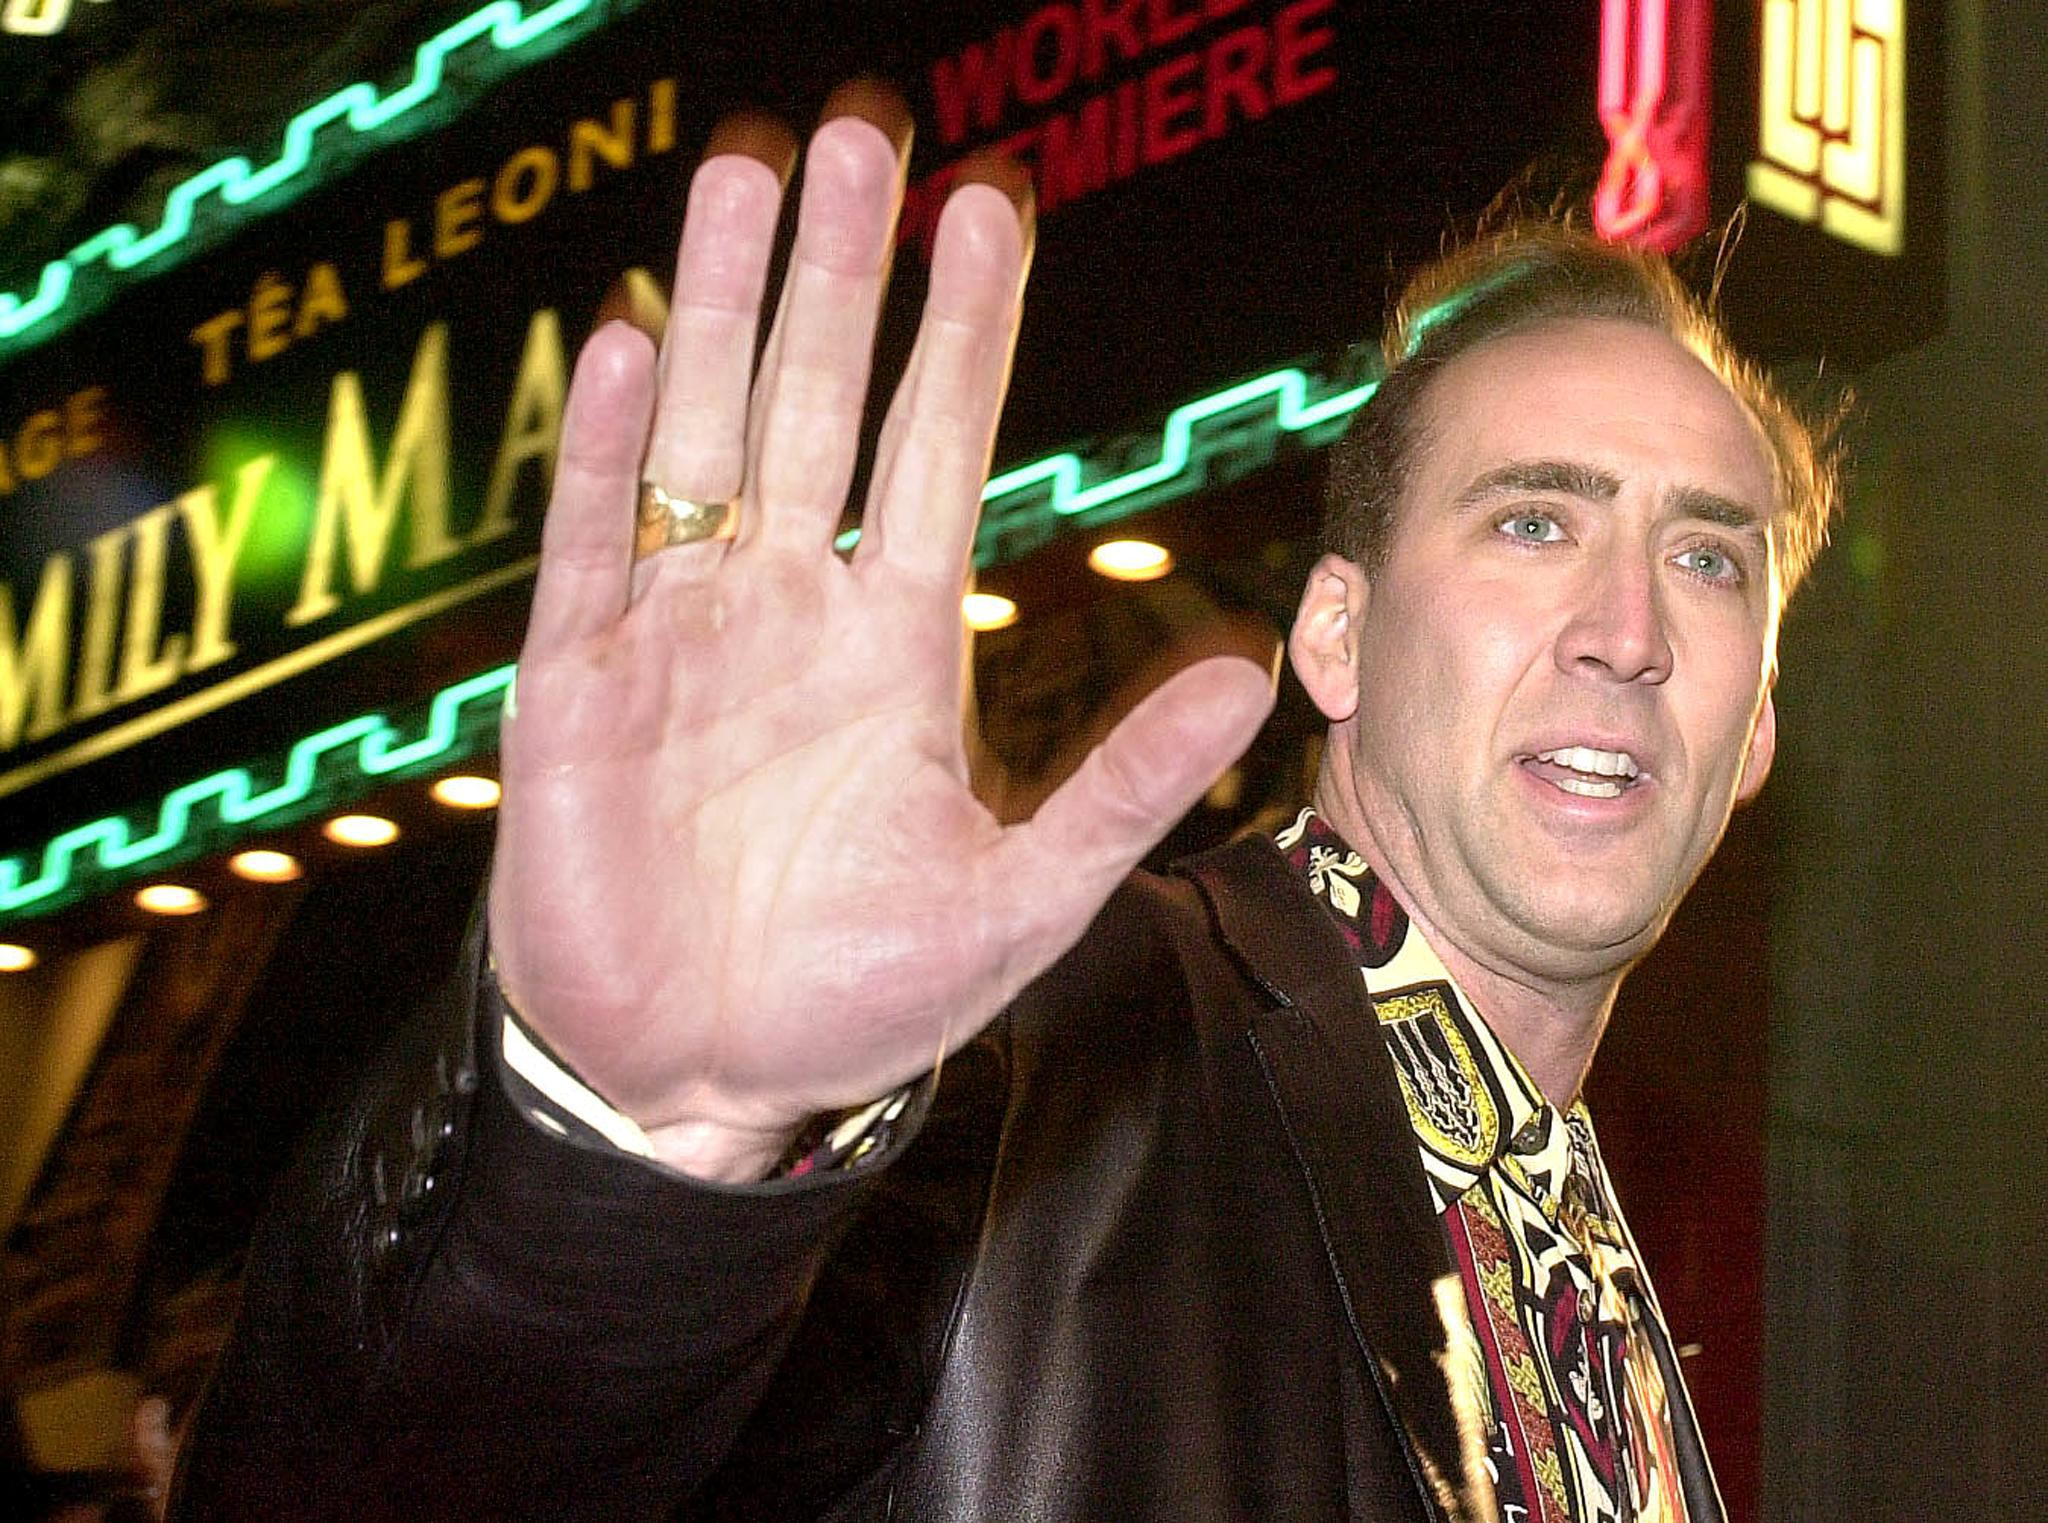 Nicolas Cage holds up his hand